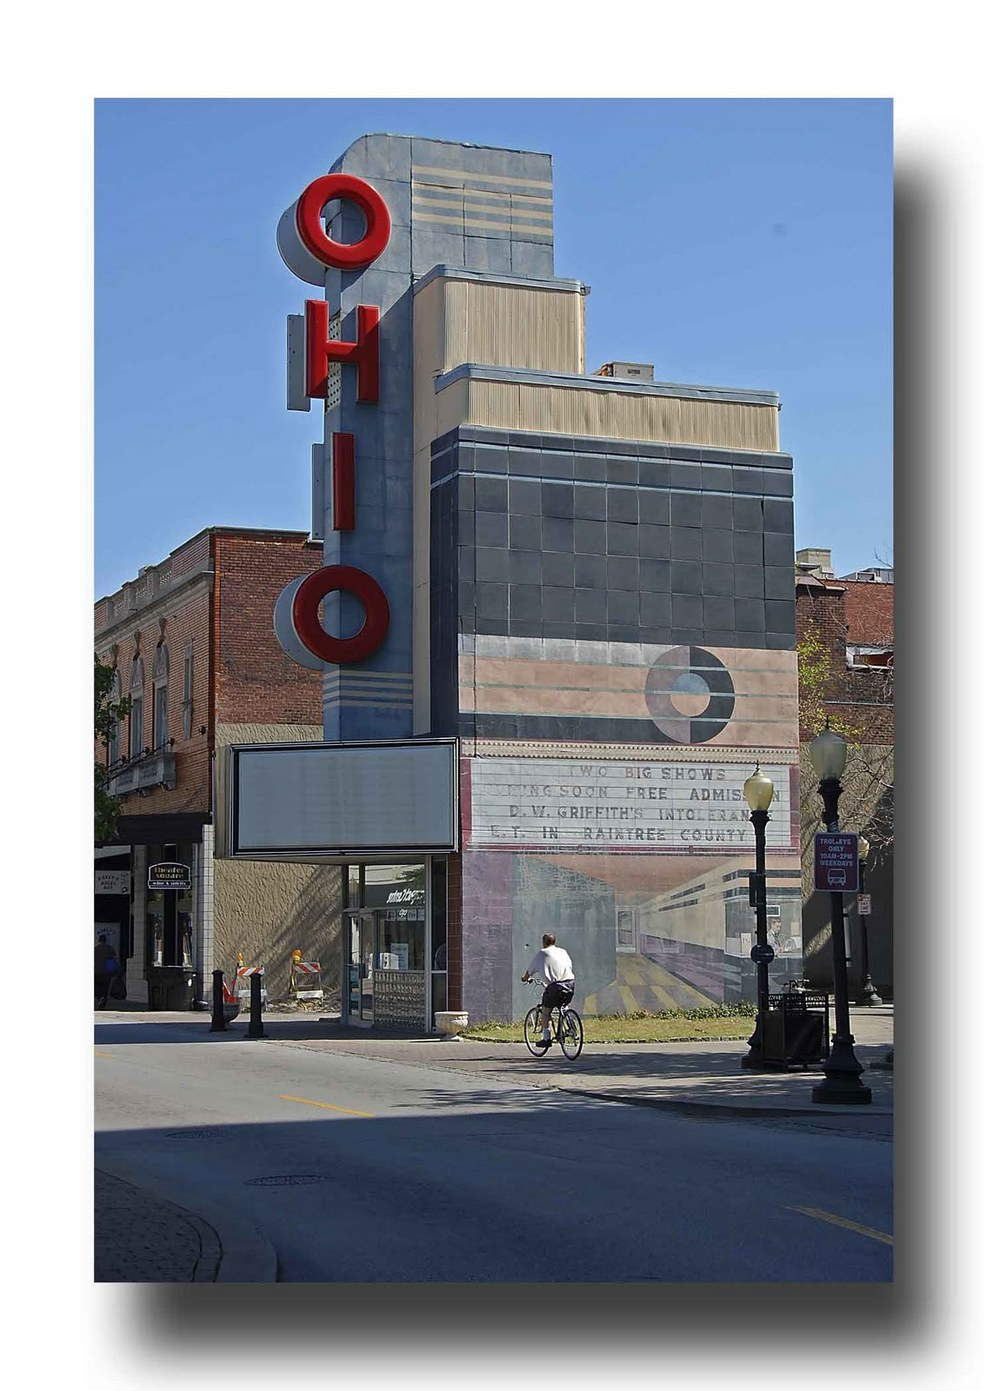 The Ohio Theater